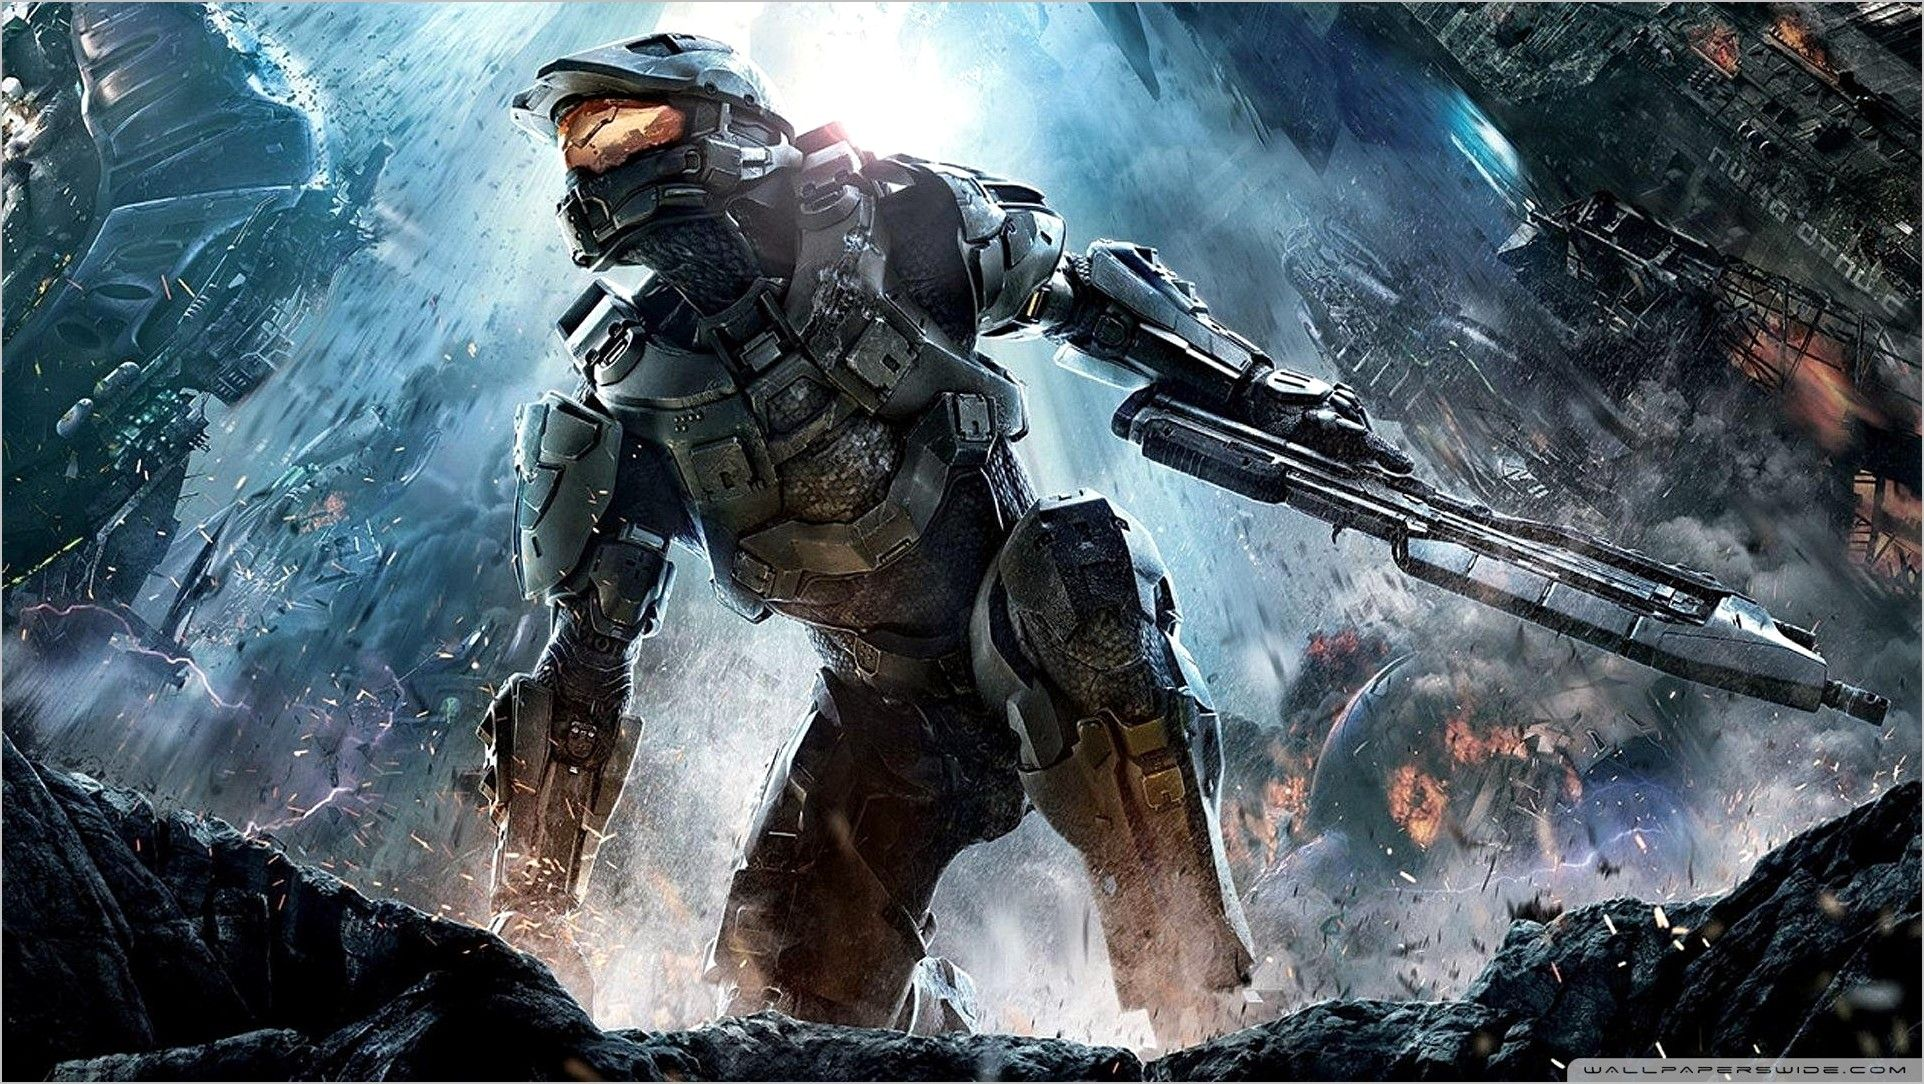 Halo 4 Wallpaper 4k In 2020 Halo Cool Wallpapers For Pc Video Games